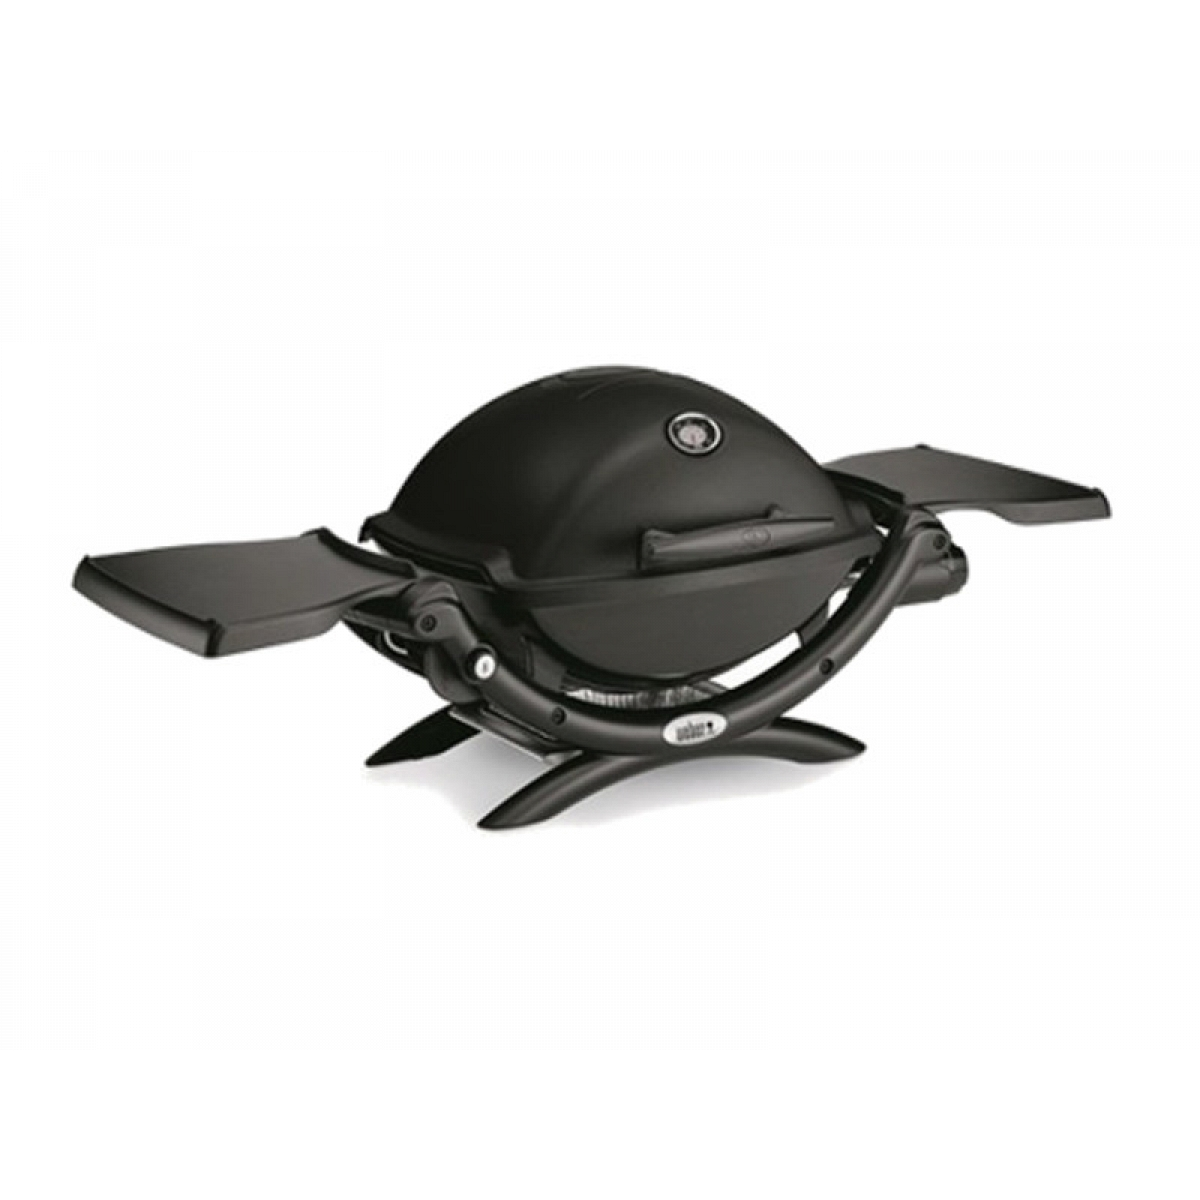 Portable Gas Bbq Weber Q1200 Available In Various Colors